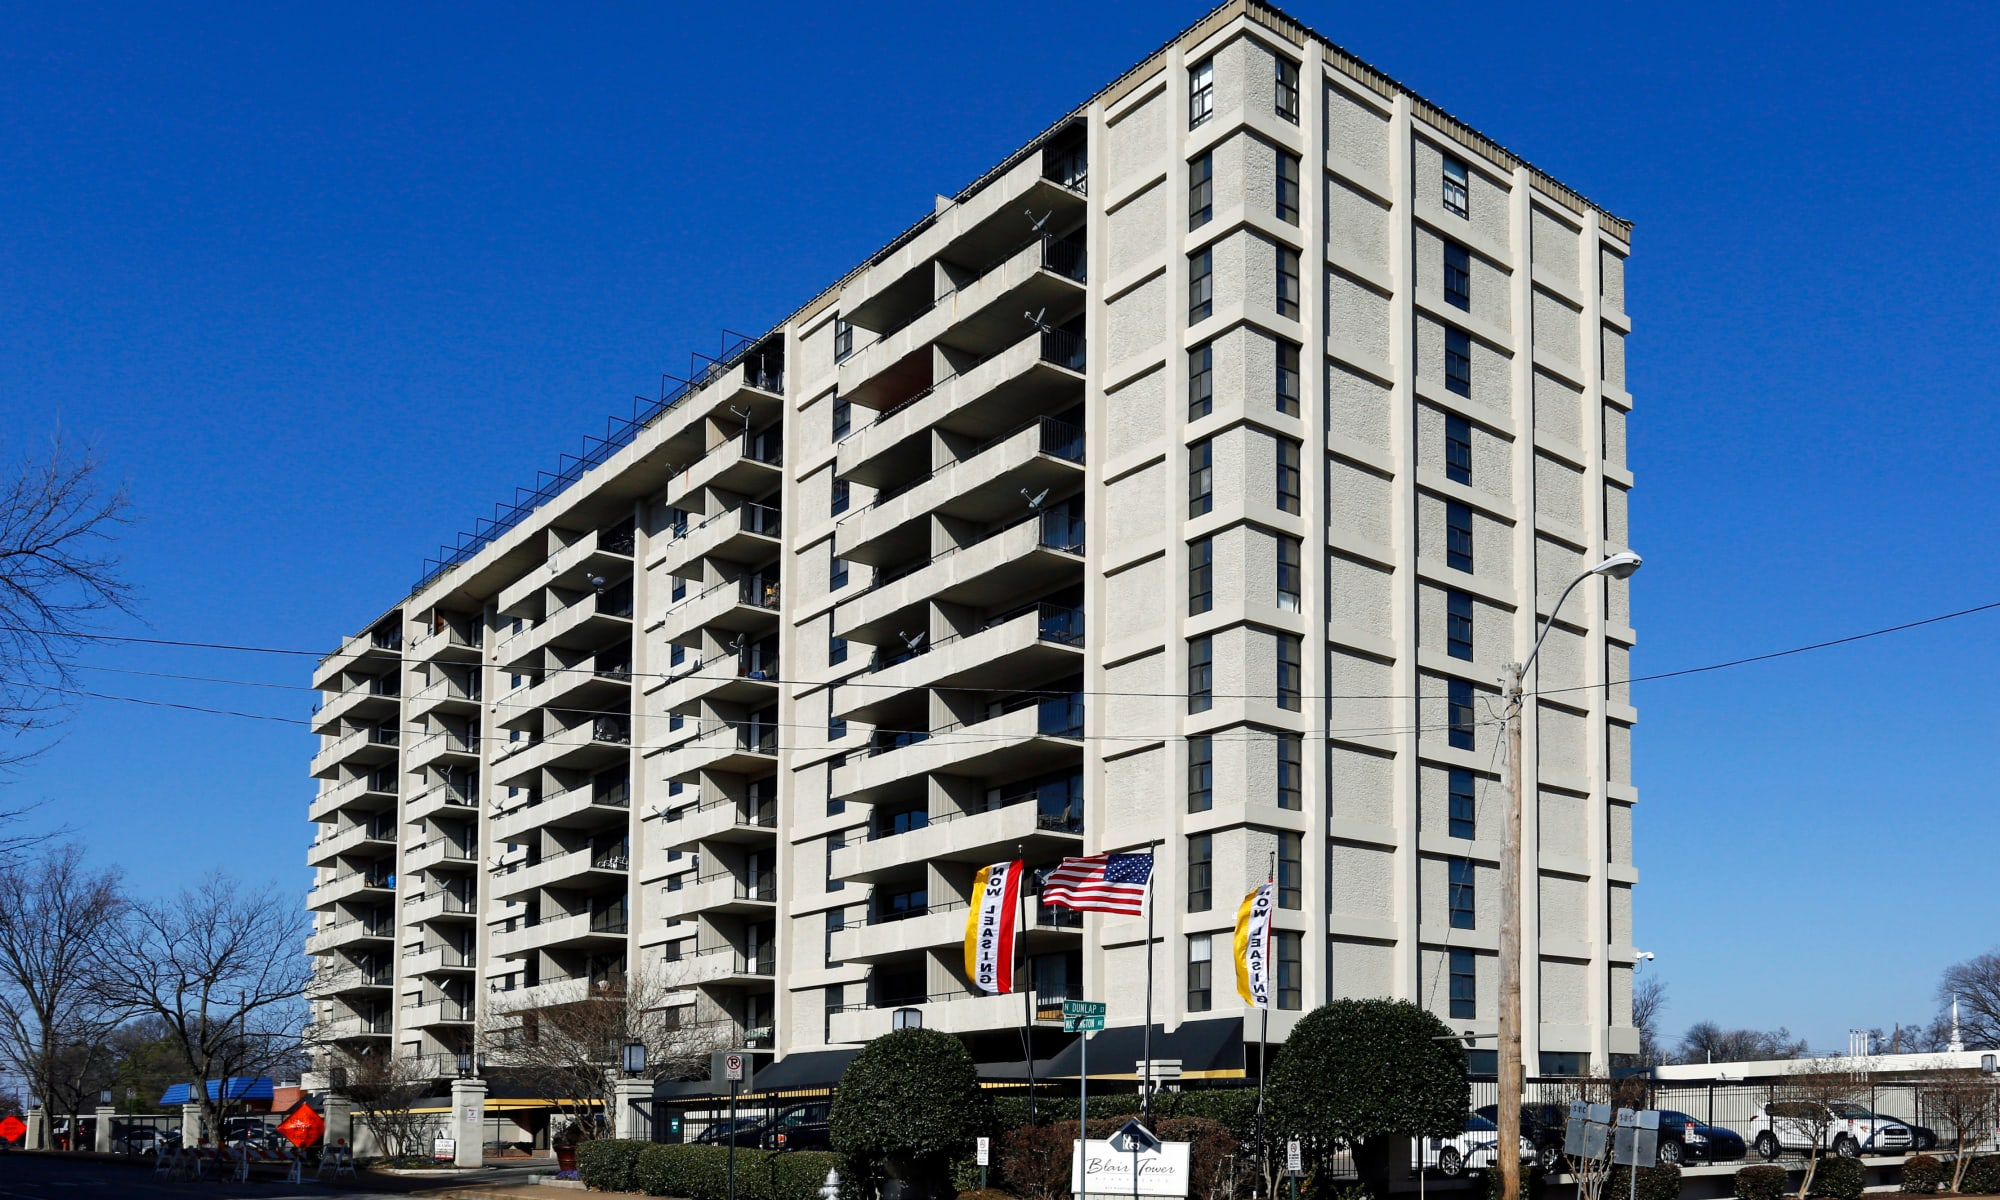 Apartments at Iris Apartments in Memphis, Tennessee